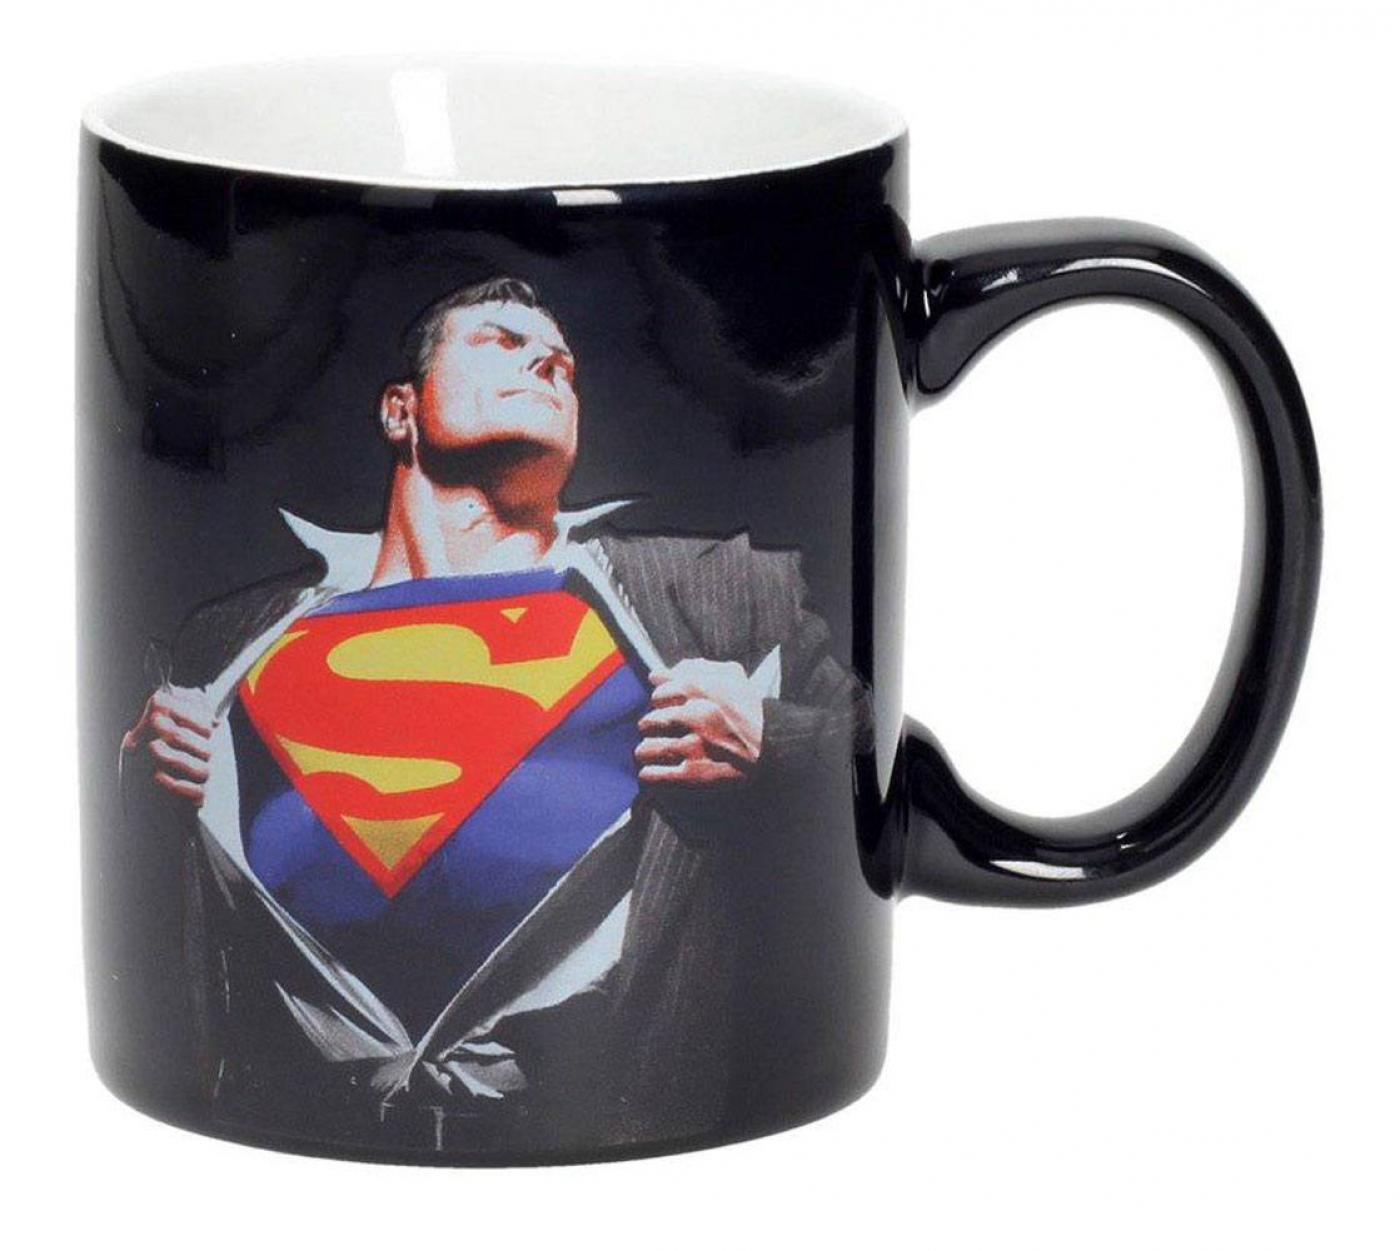 DC Comics Mug Masterworks Collection Superman